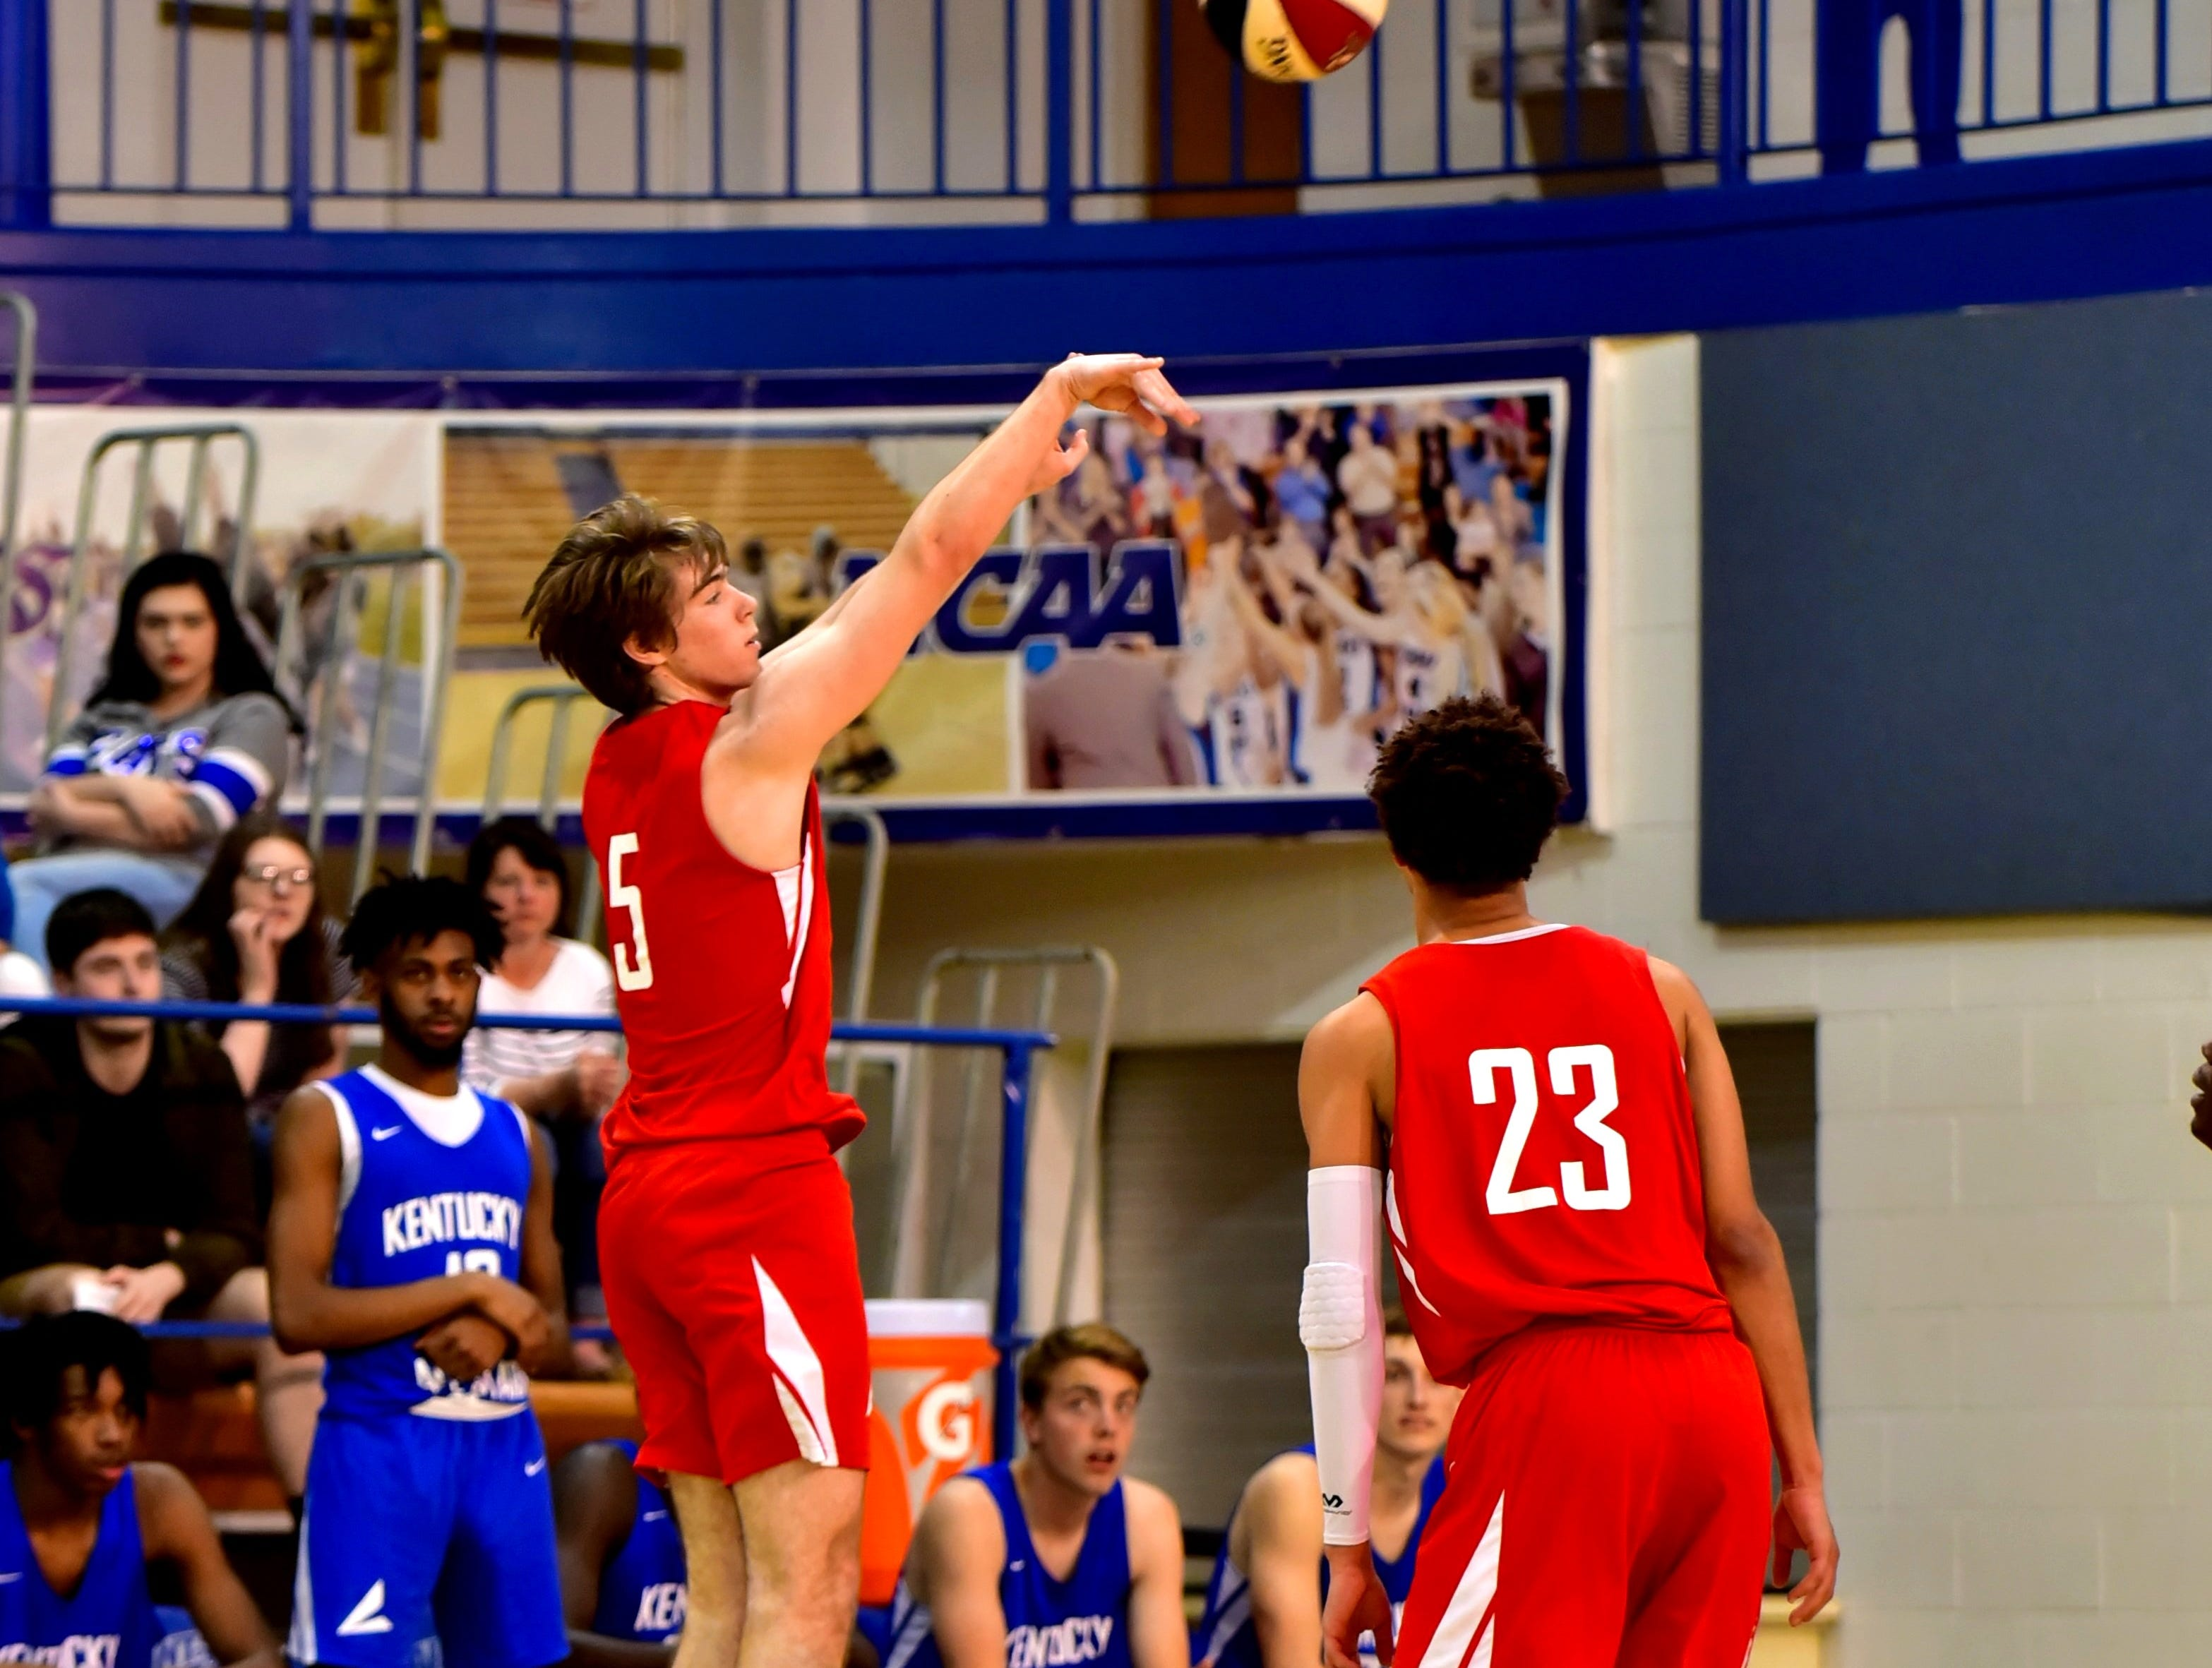 Alec Pfriem of Moeller drains a three pointer for the Ohio boys team in the third quarter at the 28th Annual Ohio-Kentucky All Star Games played at Thomas More University, April 13, 2019